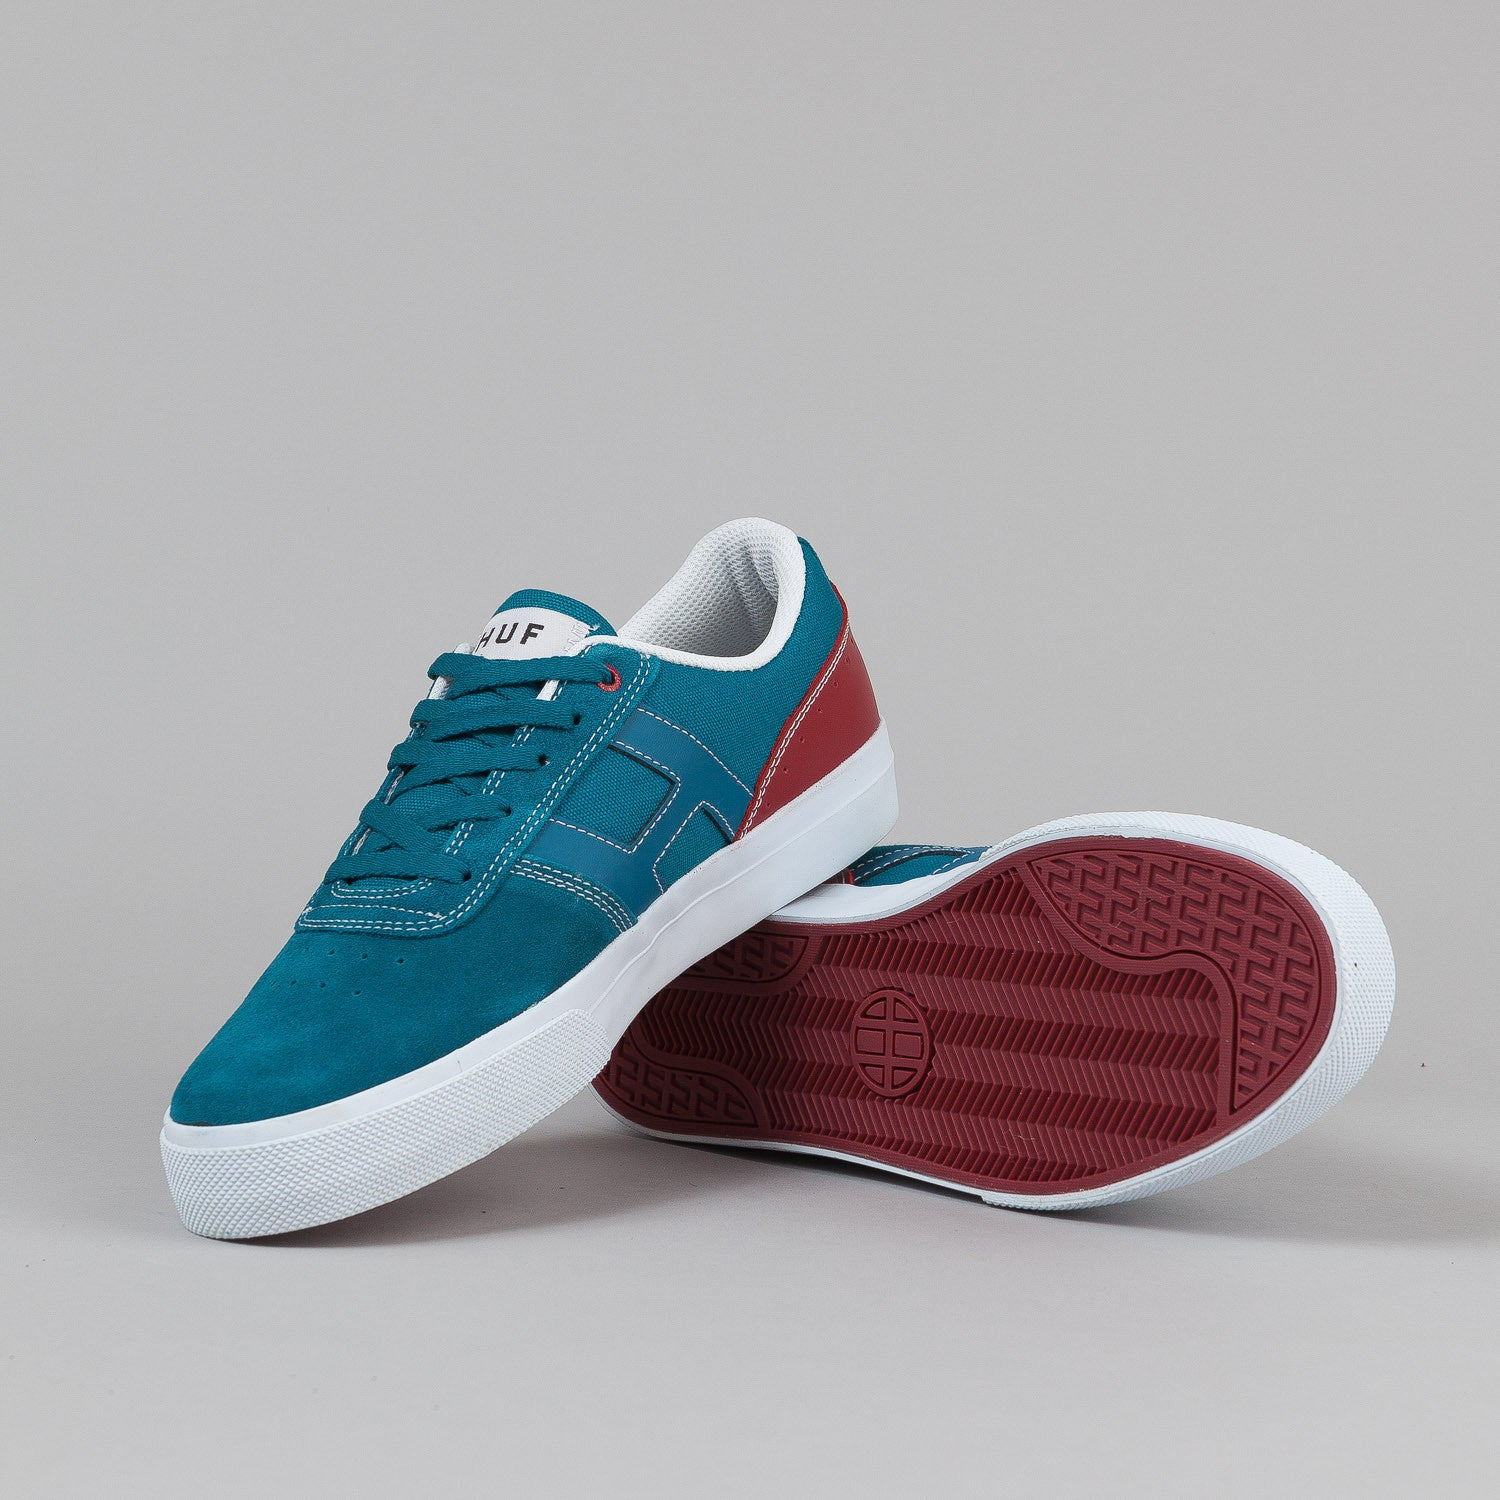 HUF Choice Shoes - Teal / Brick